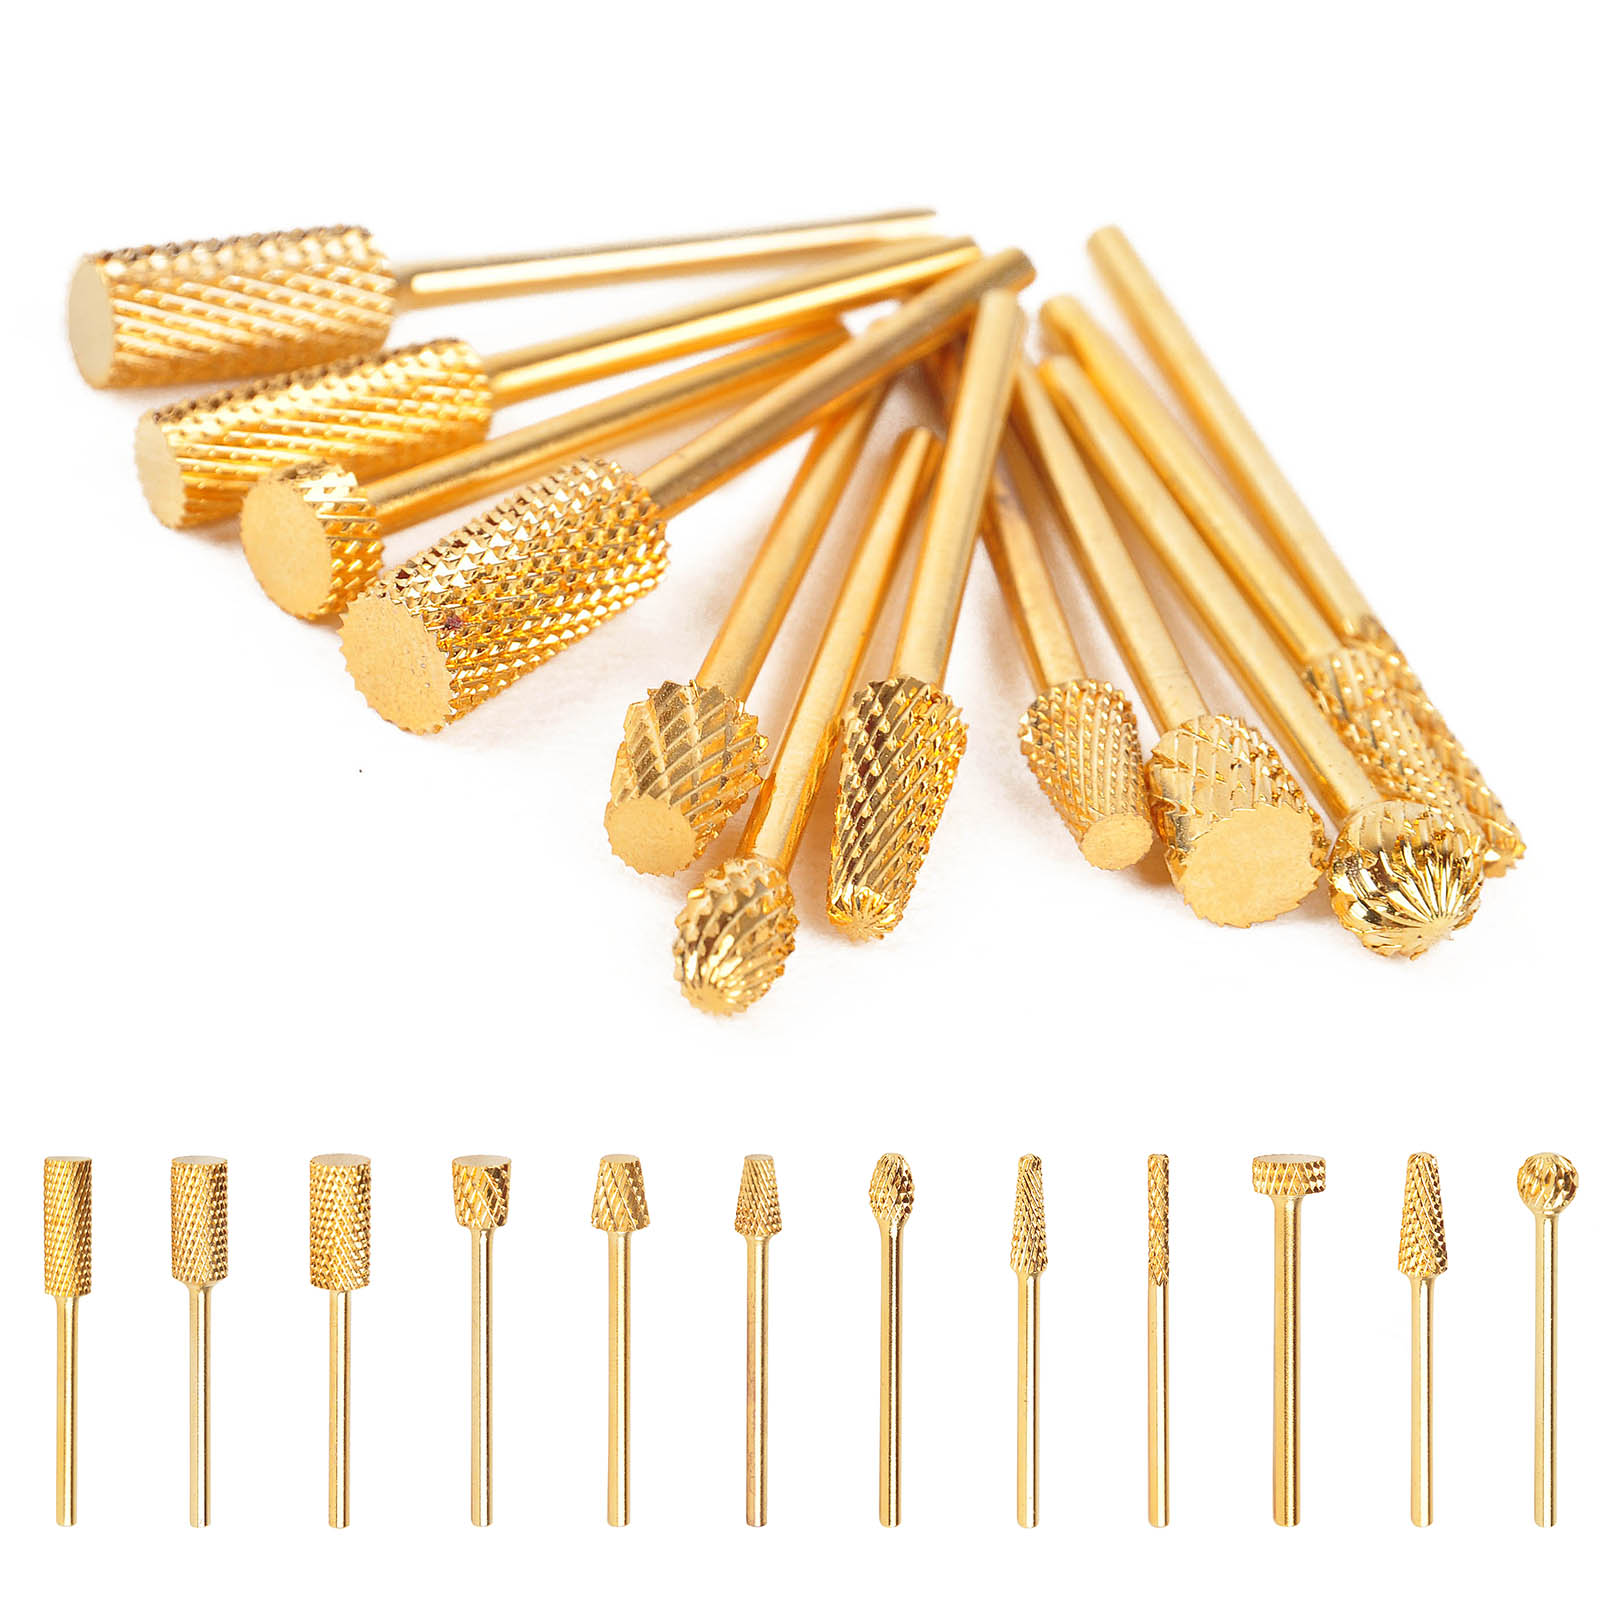 Professional Golden Nail Drill Bit Electric Durable